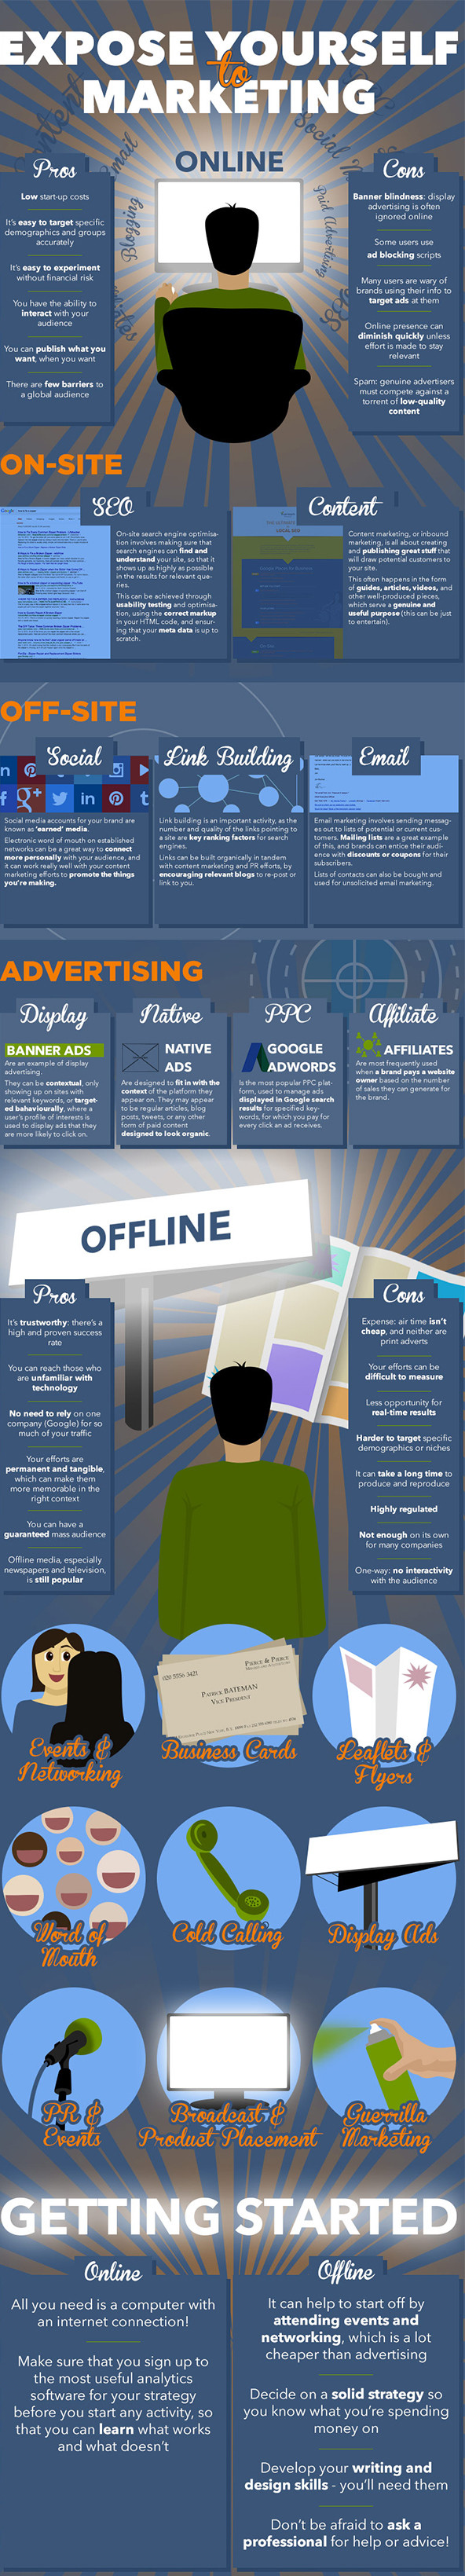 marketing-basics-18-online-and-offline-tactics-every-business-should-use1